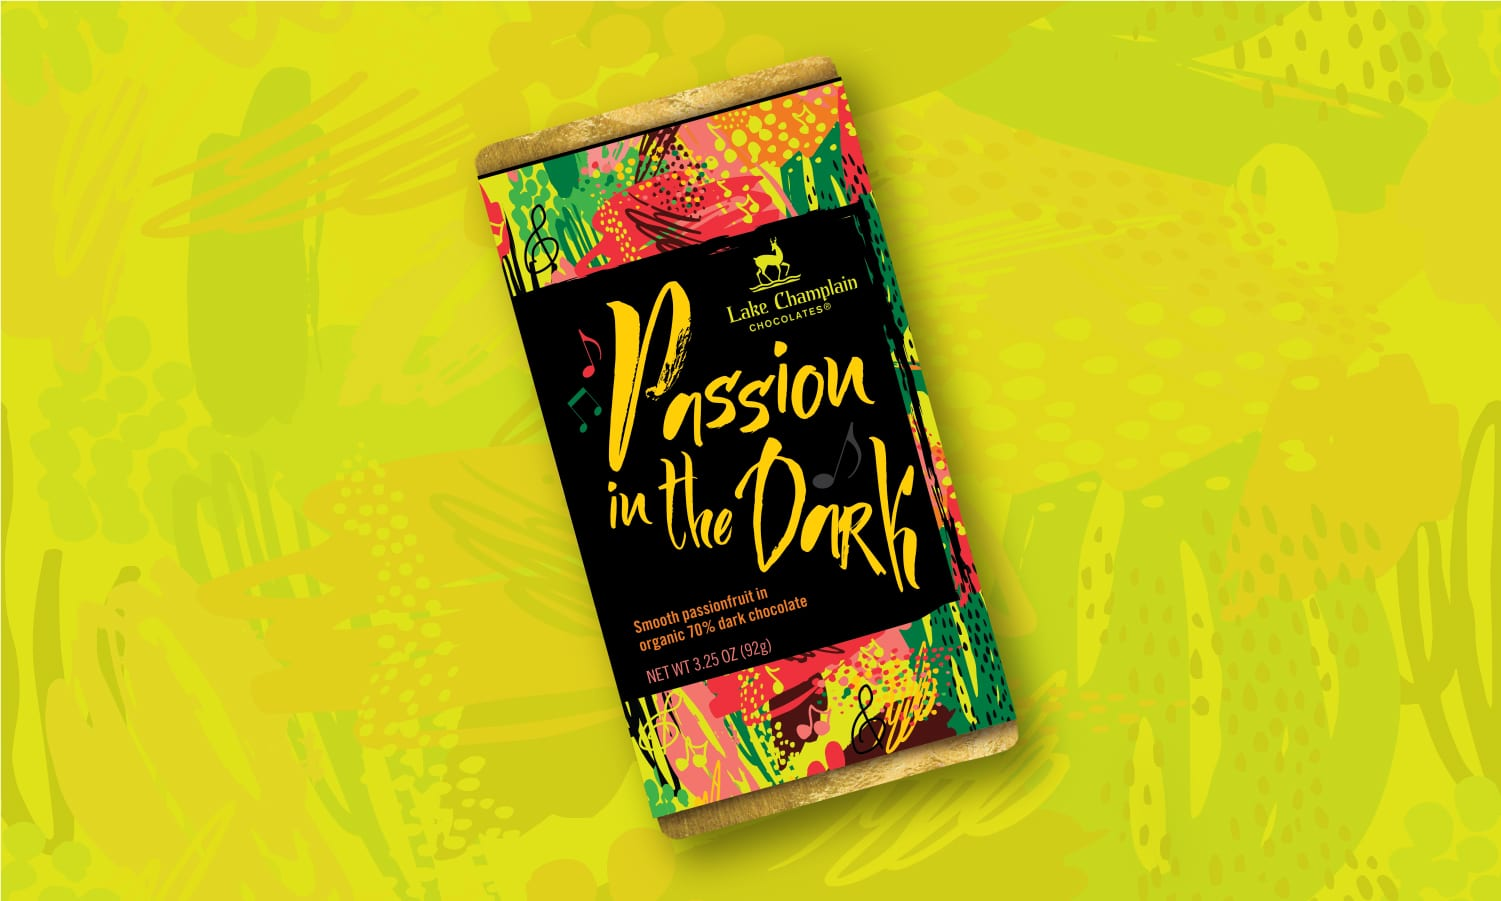 Passion in the Dark Chocolate Bar Packaging